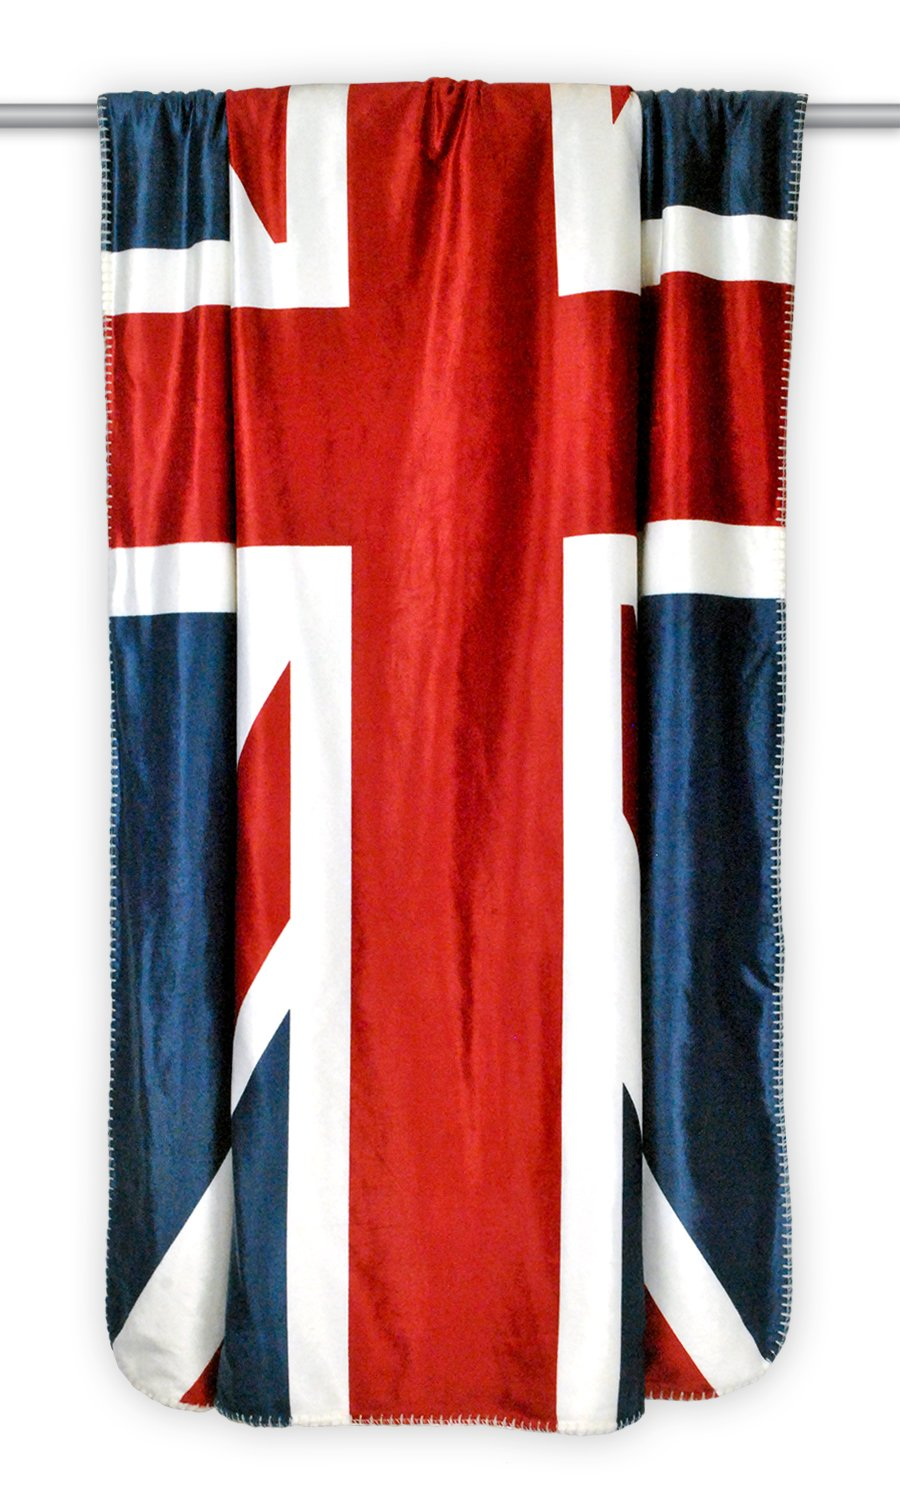 Reversible Ultra Plush Sherpa Union Jack Throw Blanket 50 inches x 60 inches